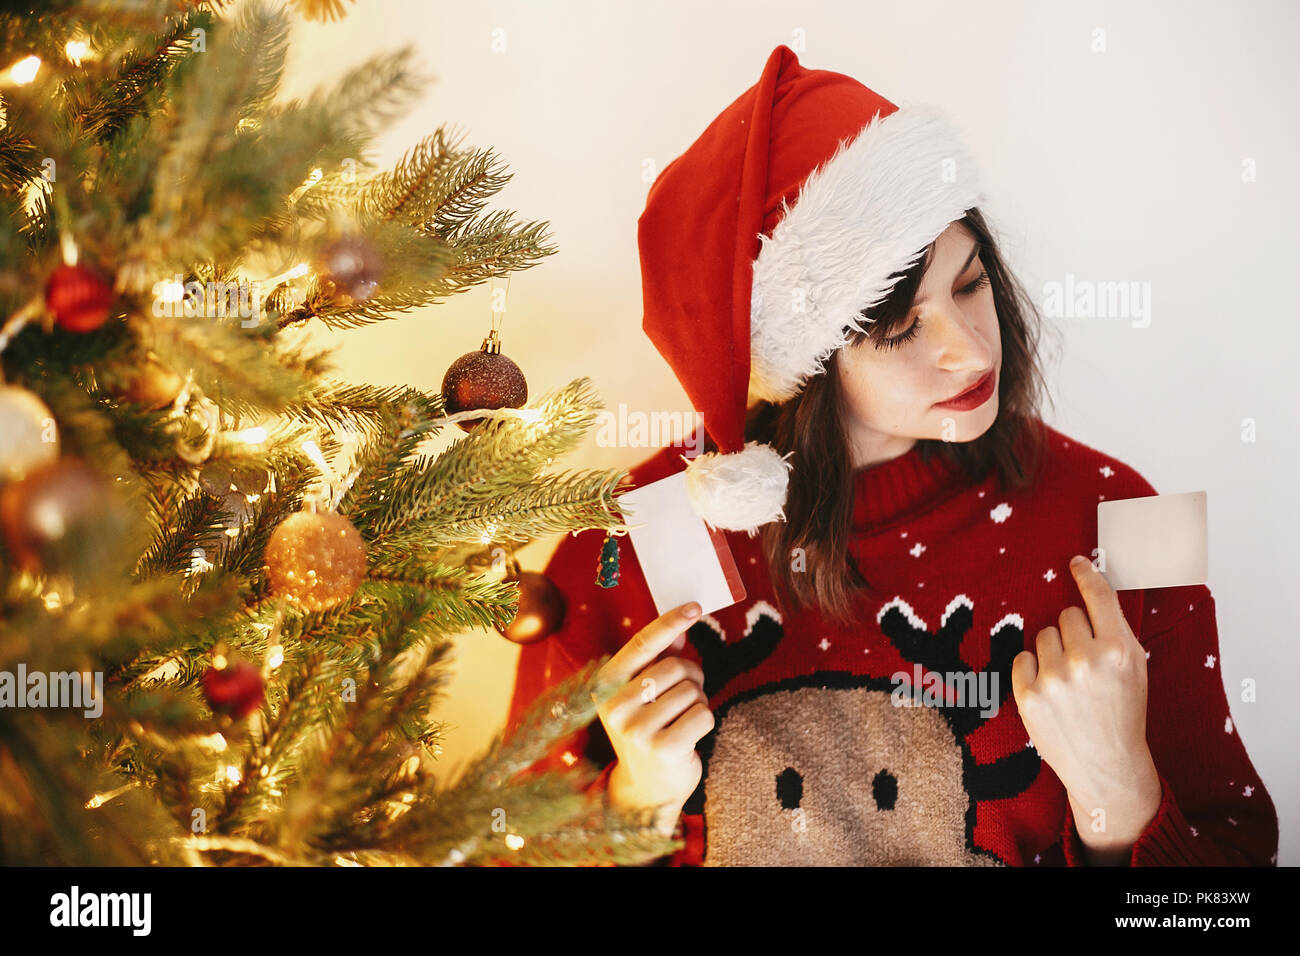 christmas shopping and sales beautiful girl holding two credit cards for discount and buying gifts on background of golden christmas tree with lights